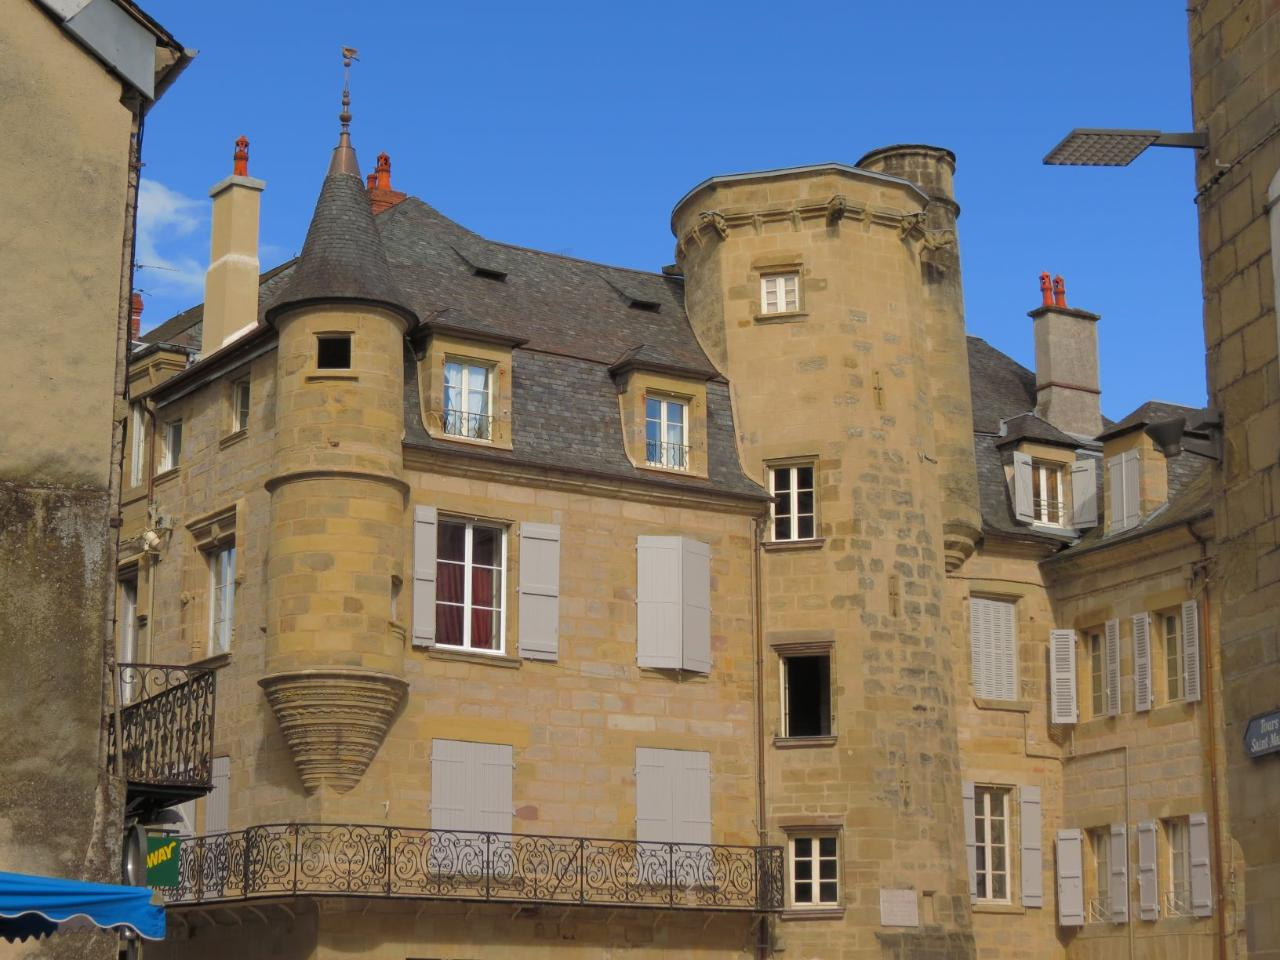 FROM SARLAT TO BRIVE TRANSFER